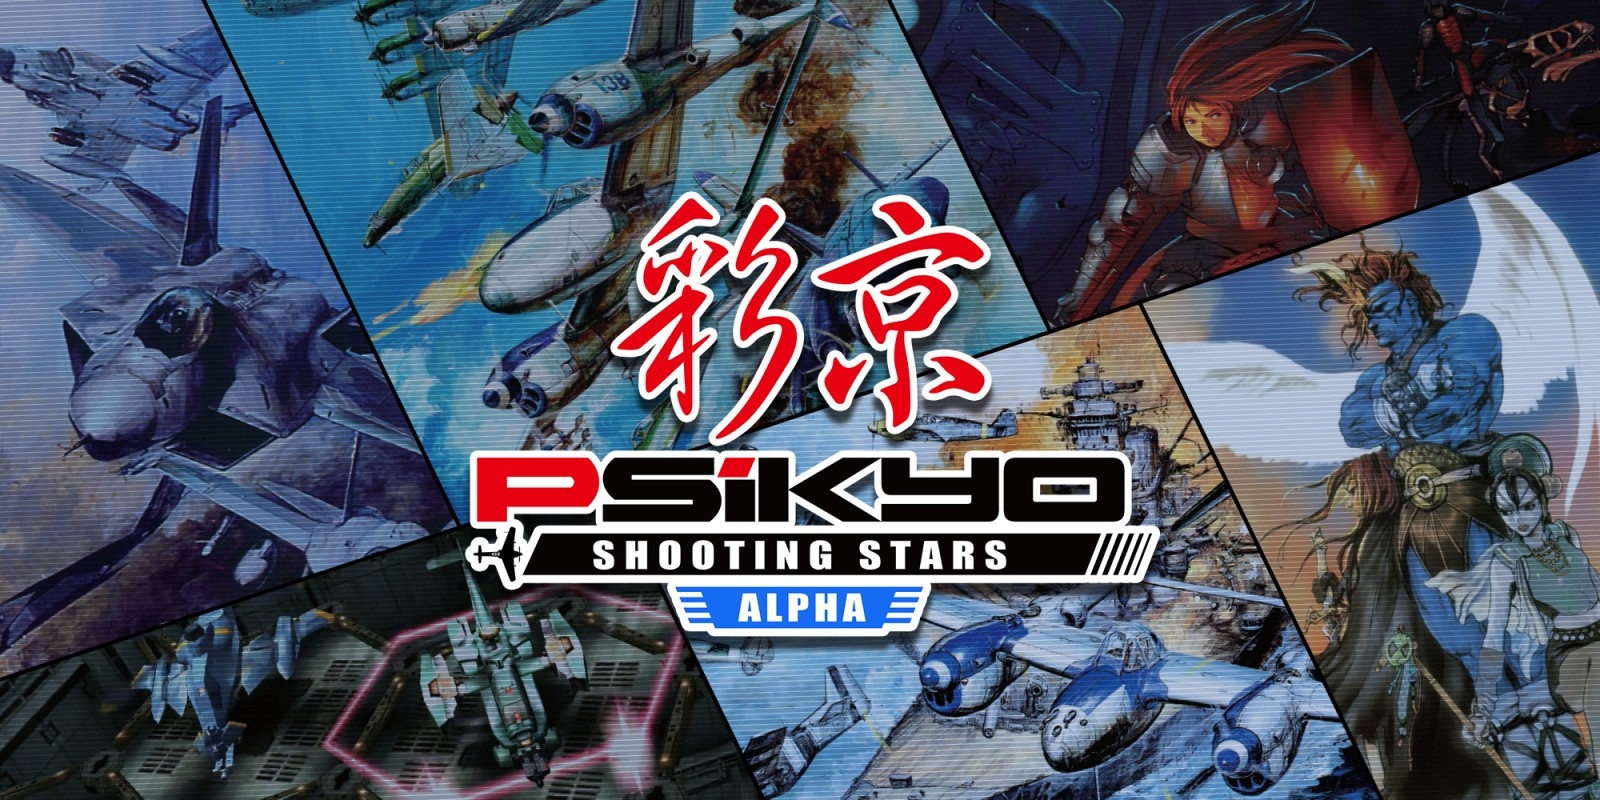 Psikyo Shooting Stars Alpha